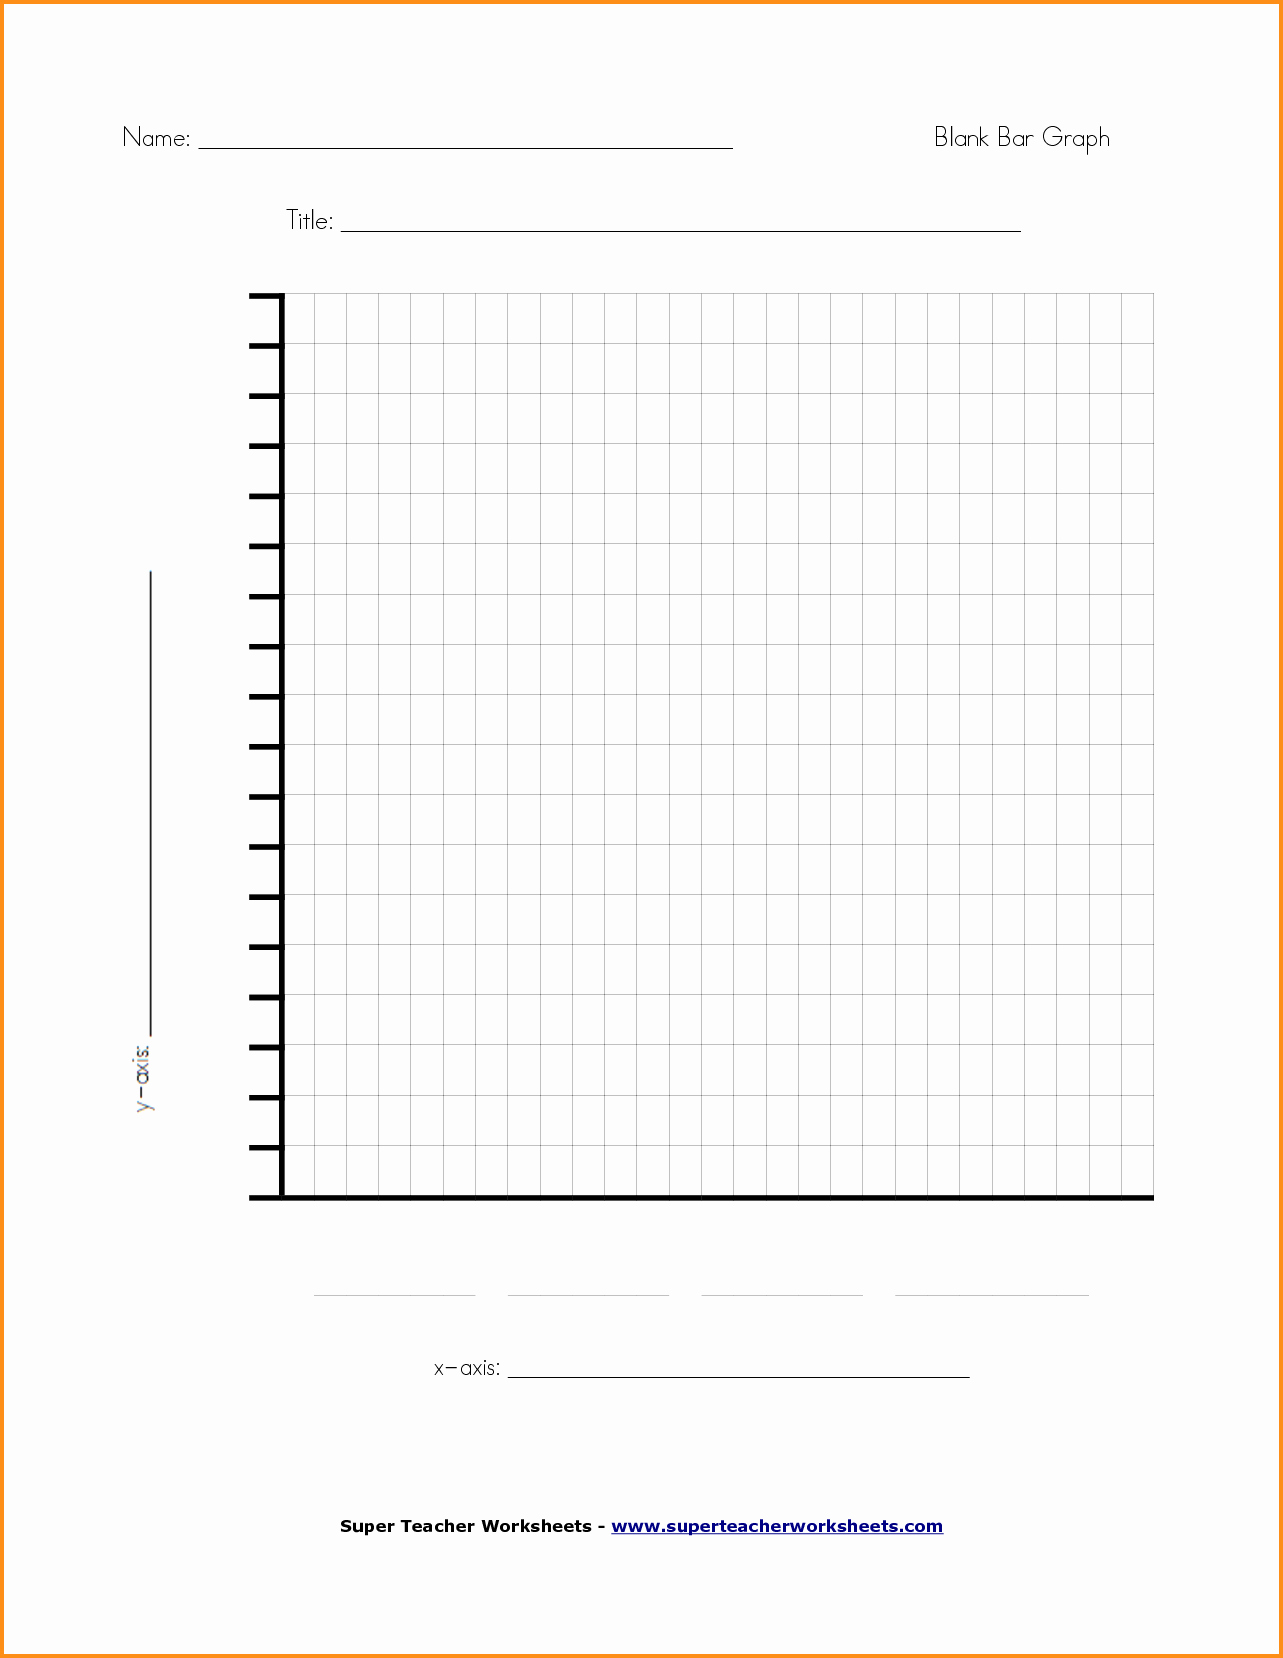 Blank Bar Graph Template Fresh Blank Bar Graph Templates Portablegasgrillweber